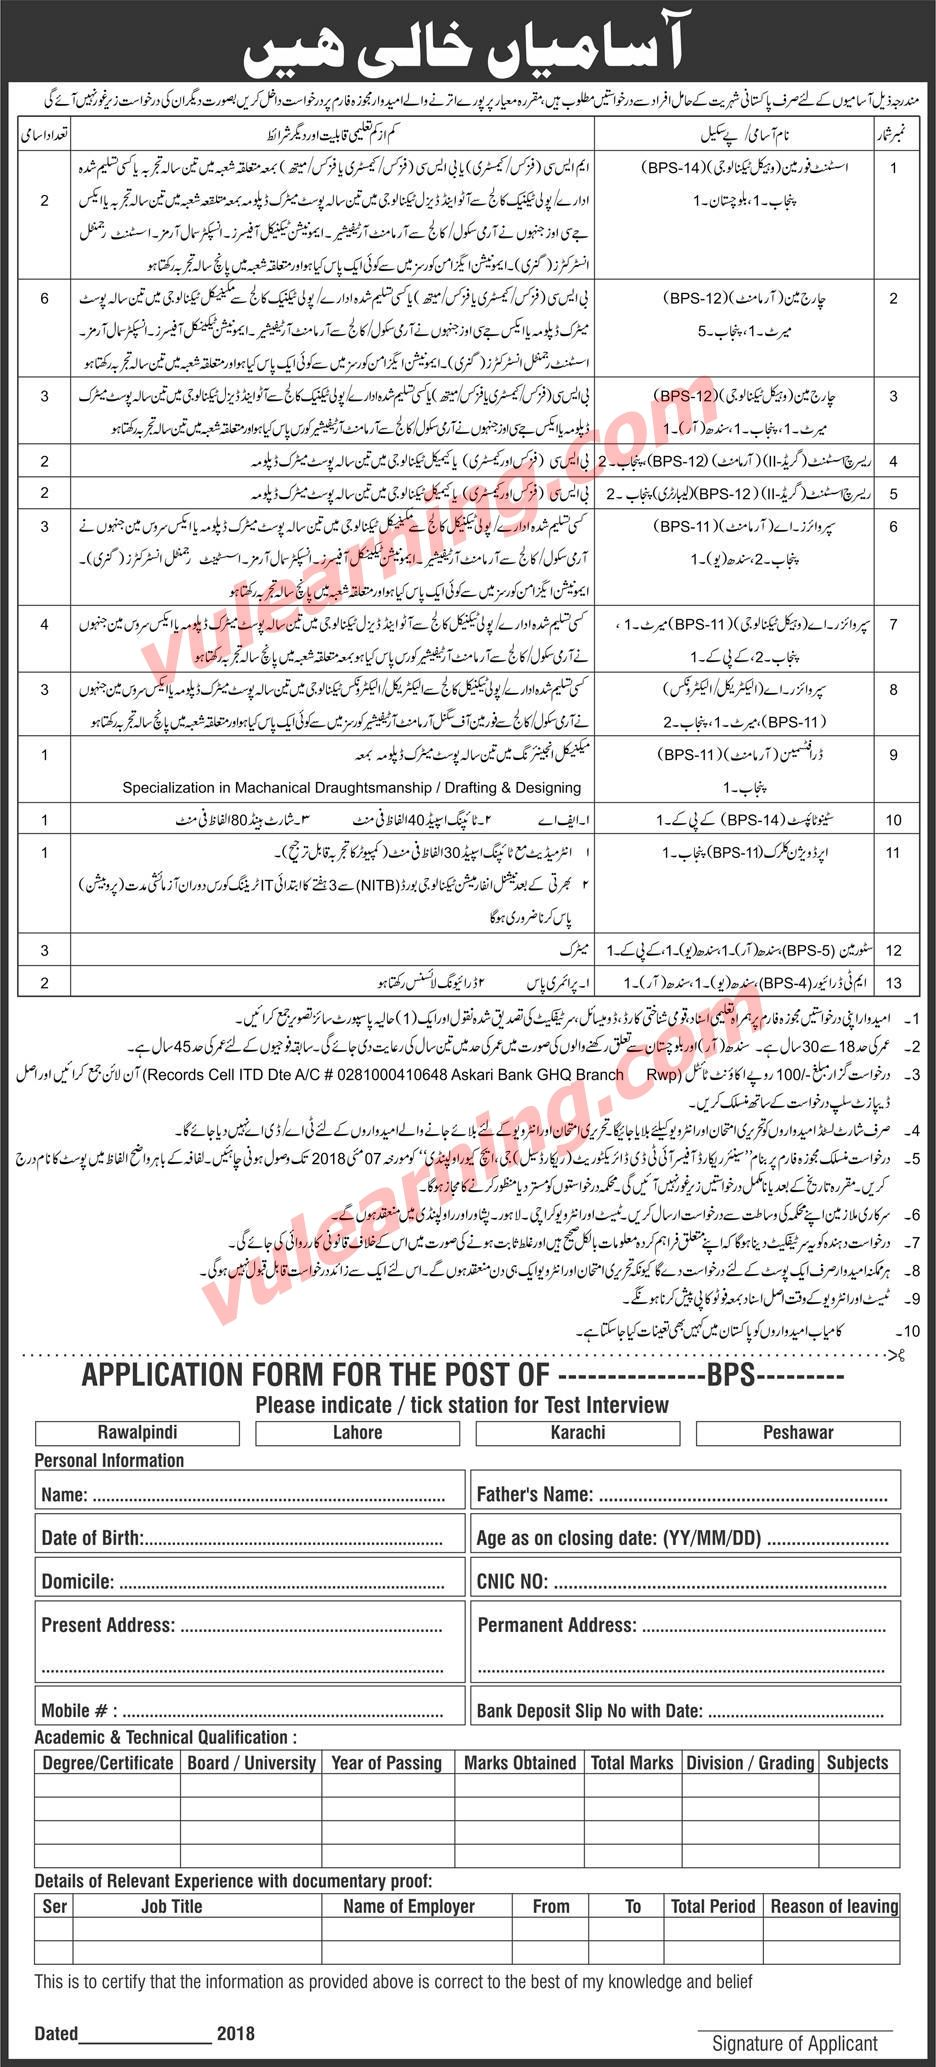 ghq rawalpindi jobs 2018 pak army civilian vacancies application